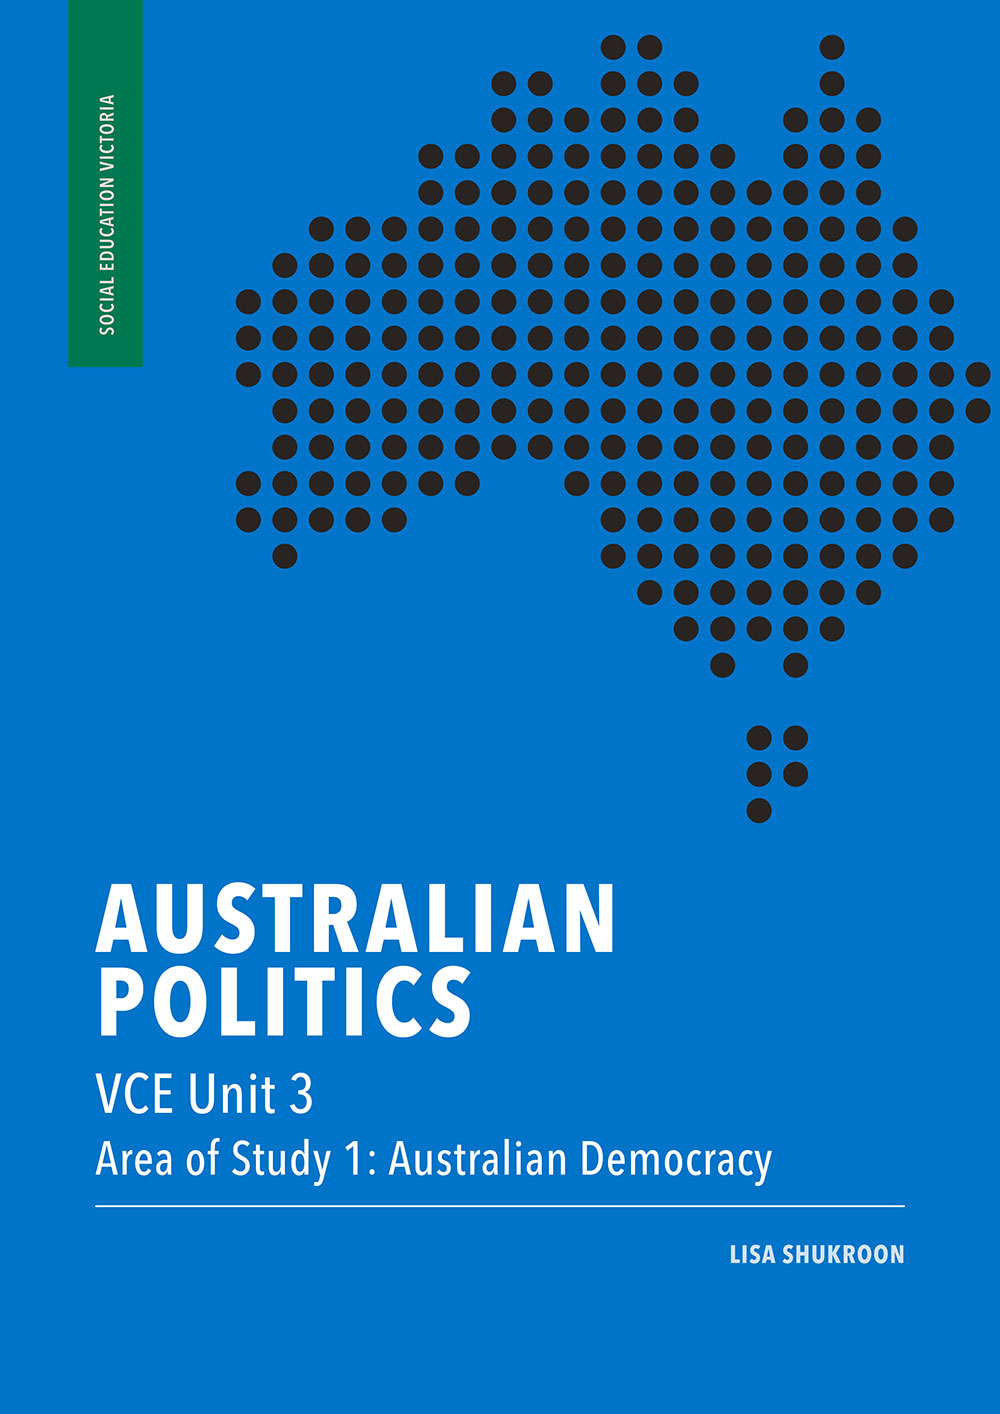 Australian Politics VCE Unit 3, Area of Study 1